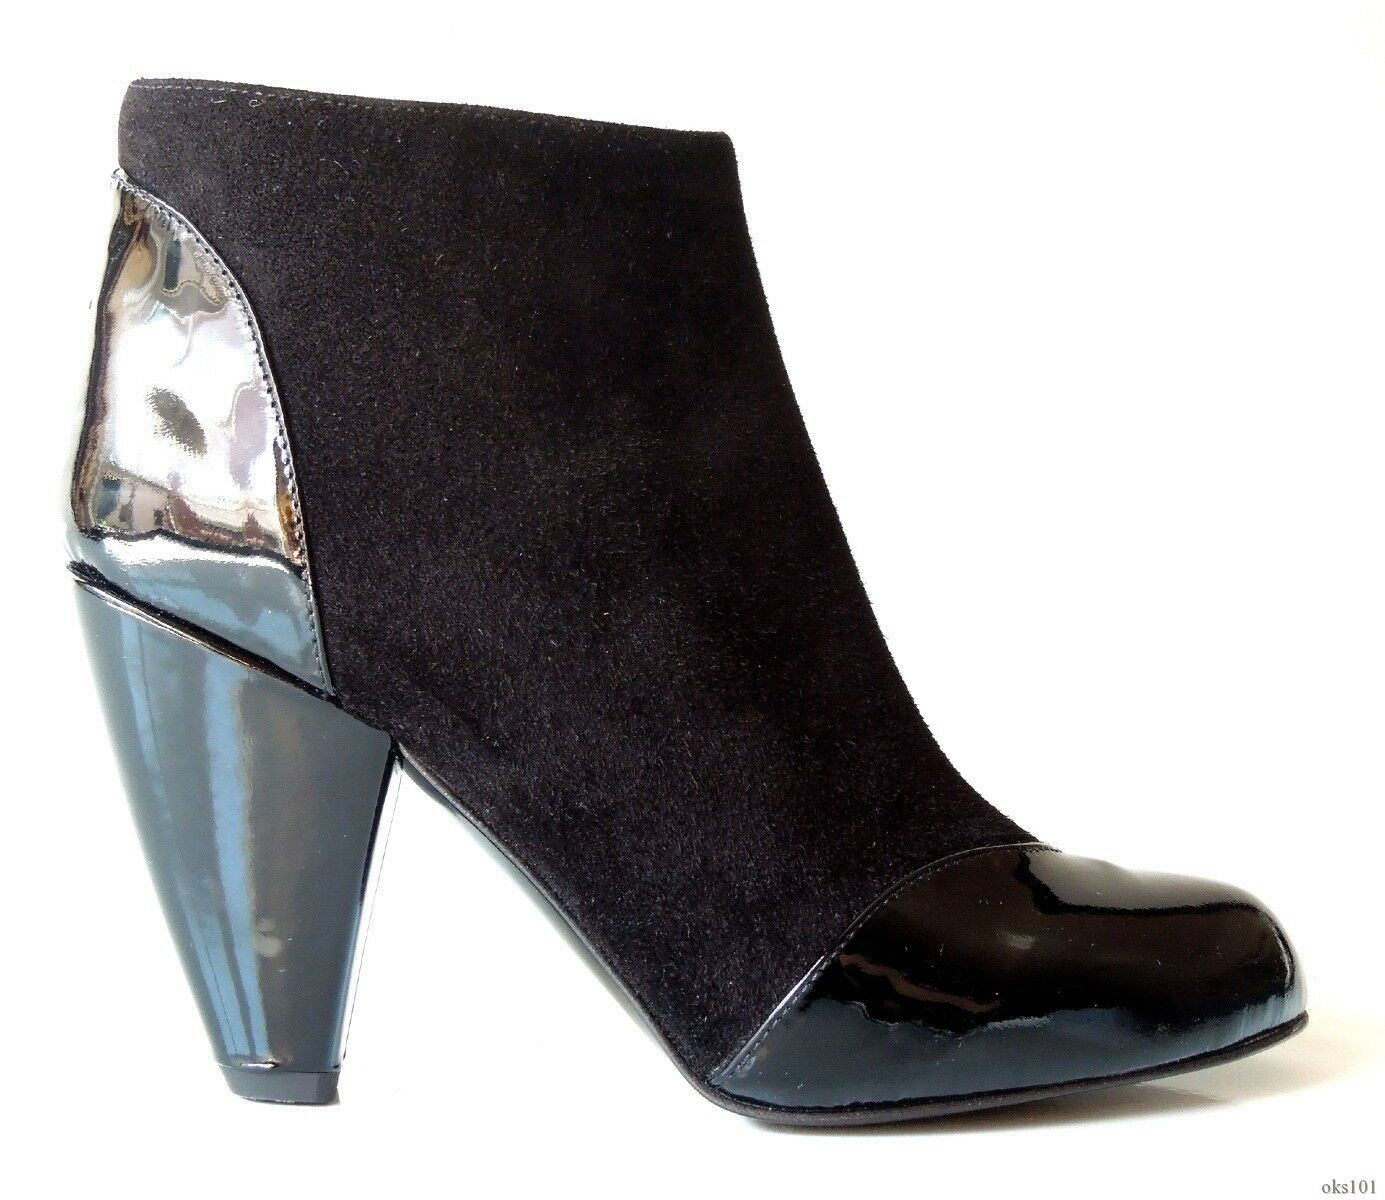 New CLAUDIA CIUTI black suede patent leather ANKLE BOOTS  - very pretty